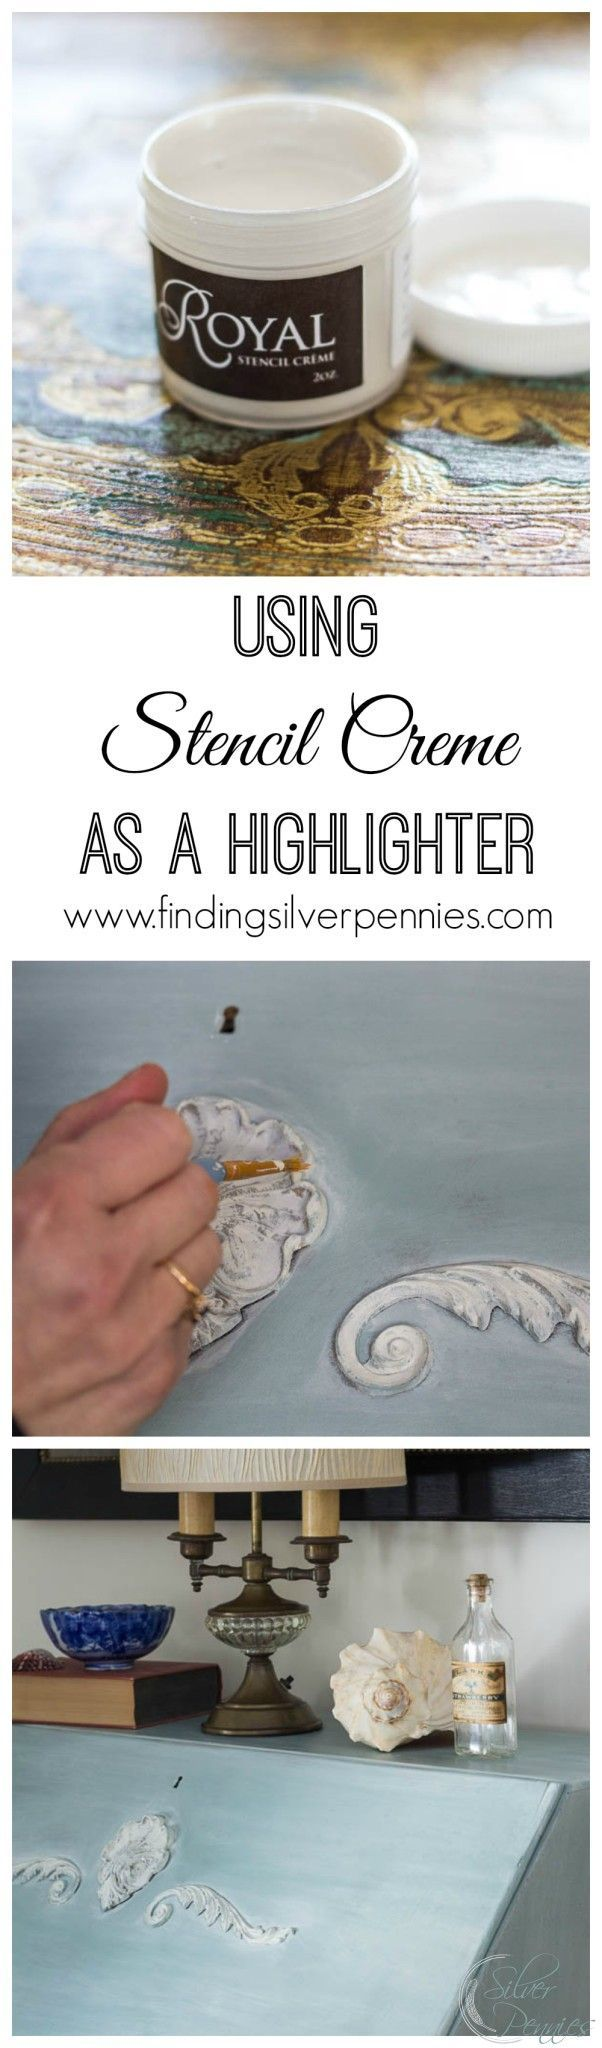 Using Royal stencil creme as highlighter for Chalk Paint painted furniture DIY projects - via Finding Silver Pennies - Royal Design Studio stencils and  paint supplies